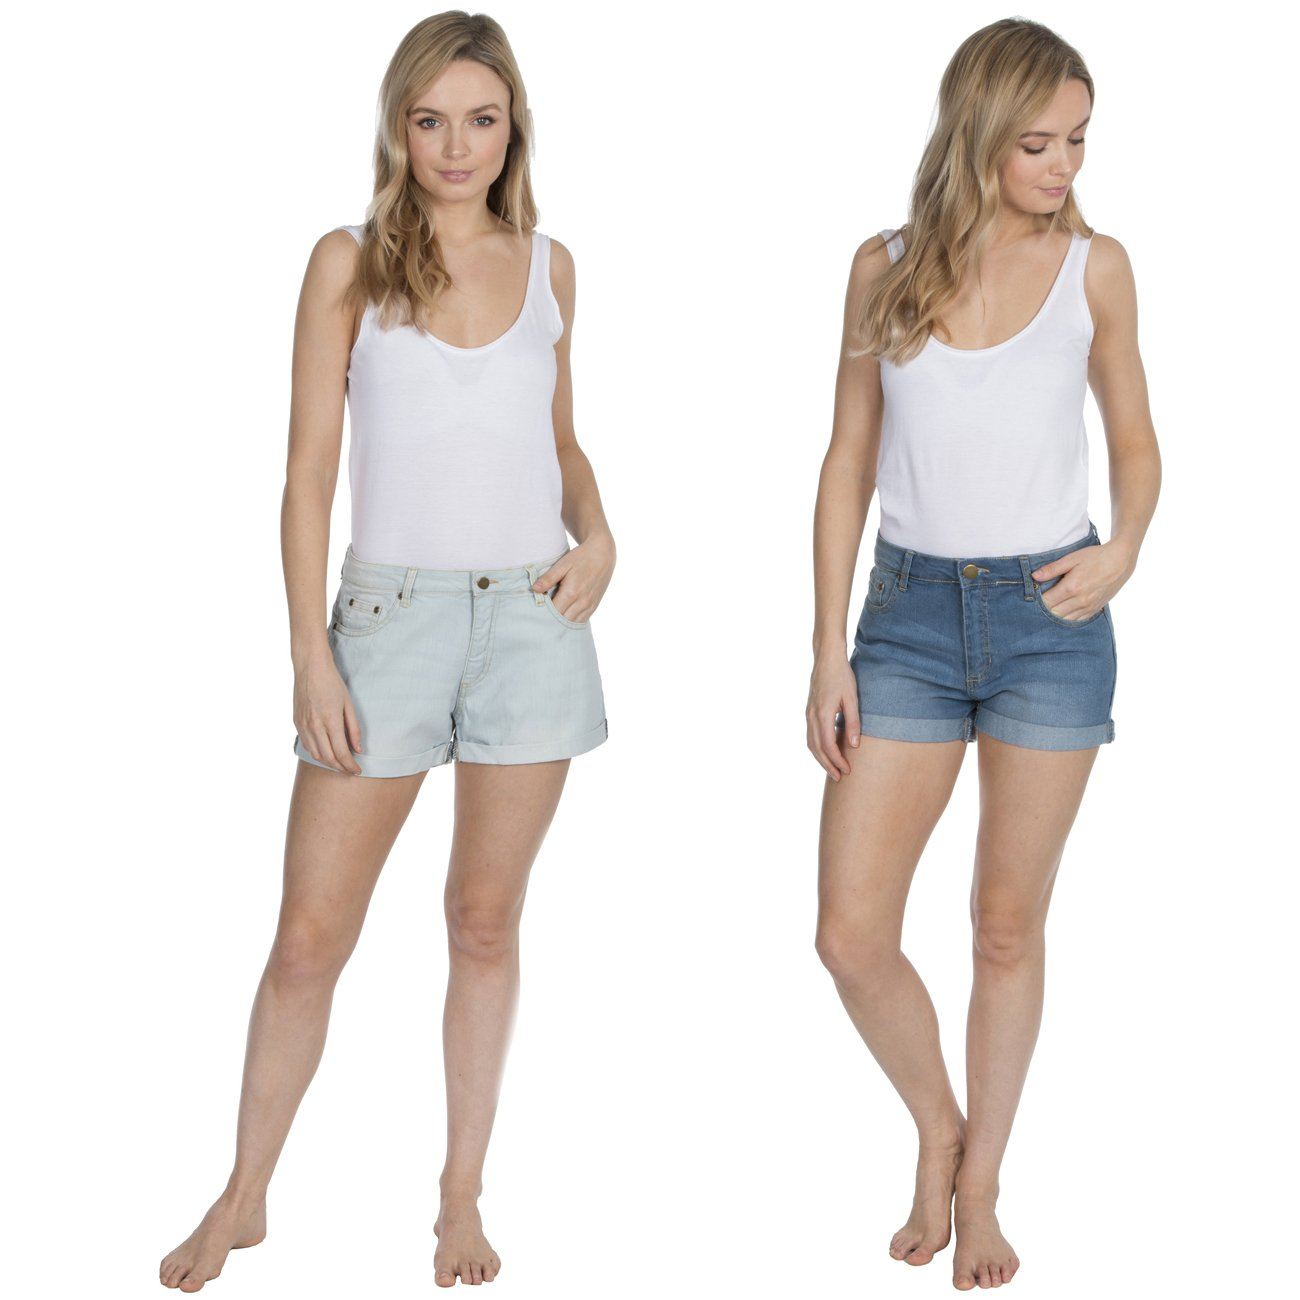 Causeway Bay Washed Denim Shorts Hot Pants (Sizes 8-22)